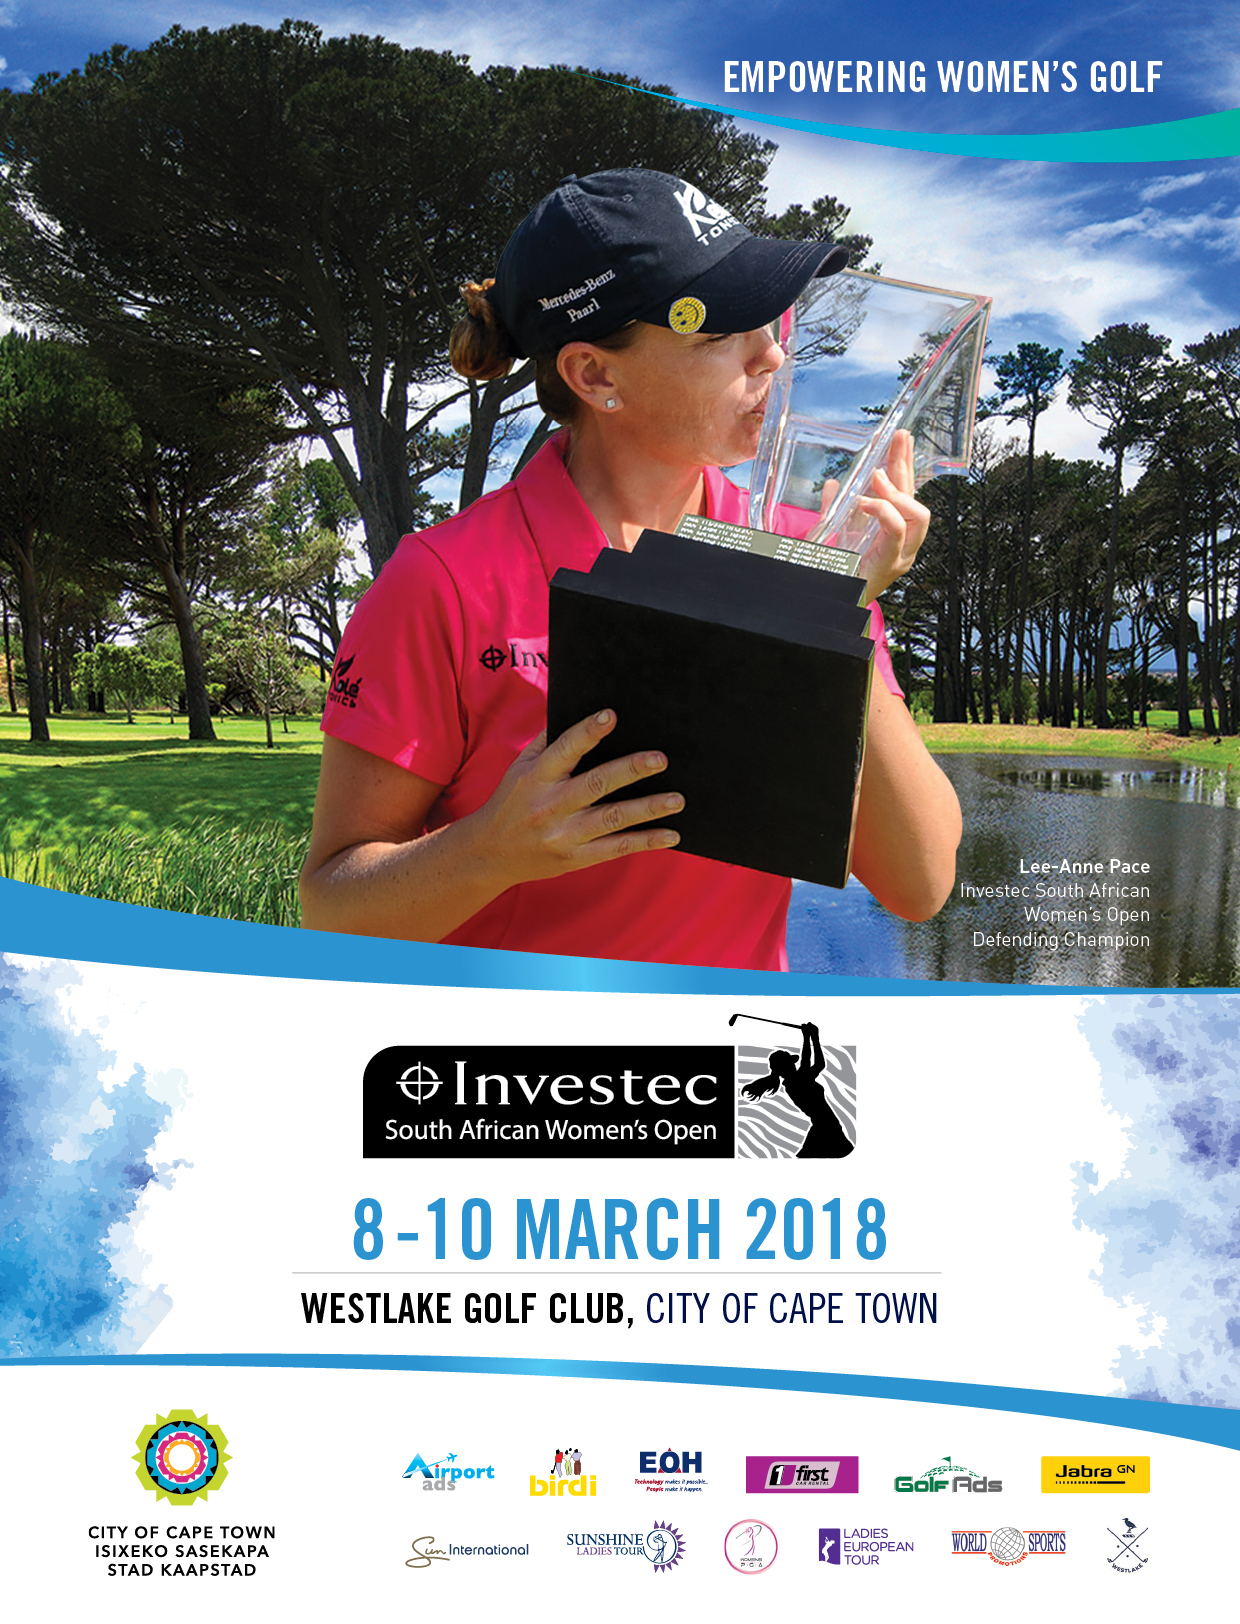 SA Women's Open - Westlake Golf Club, Cape Town